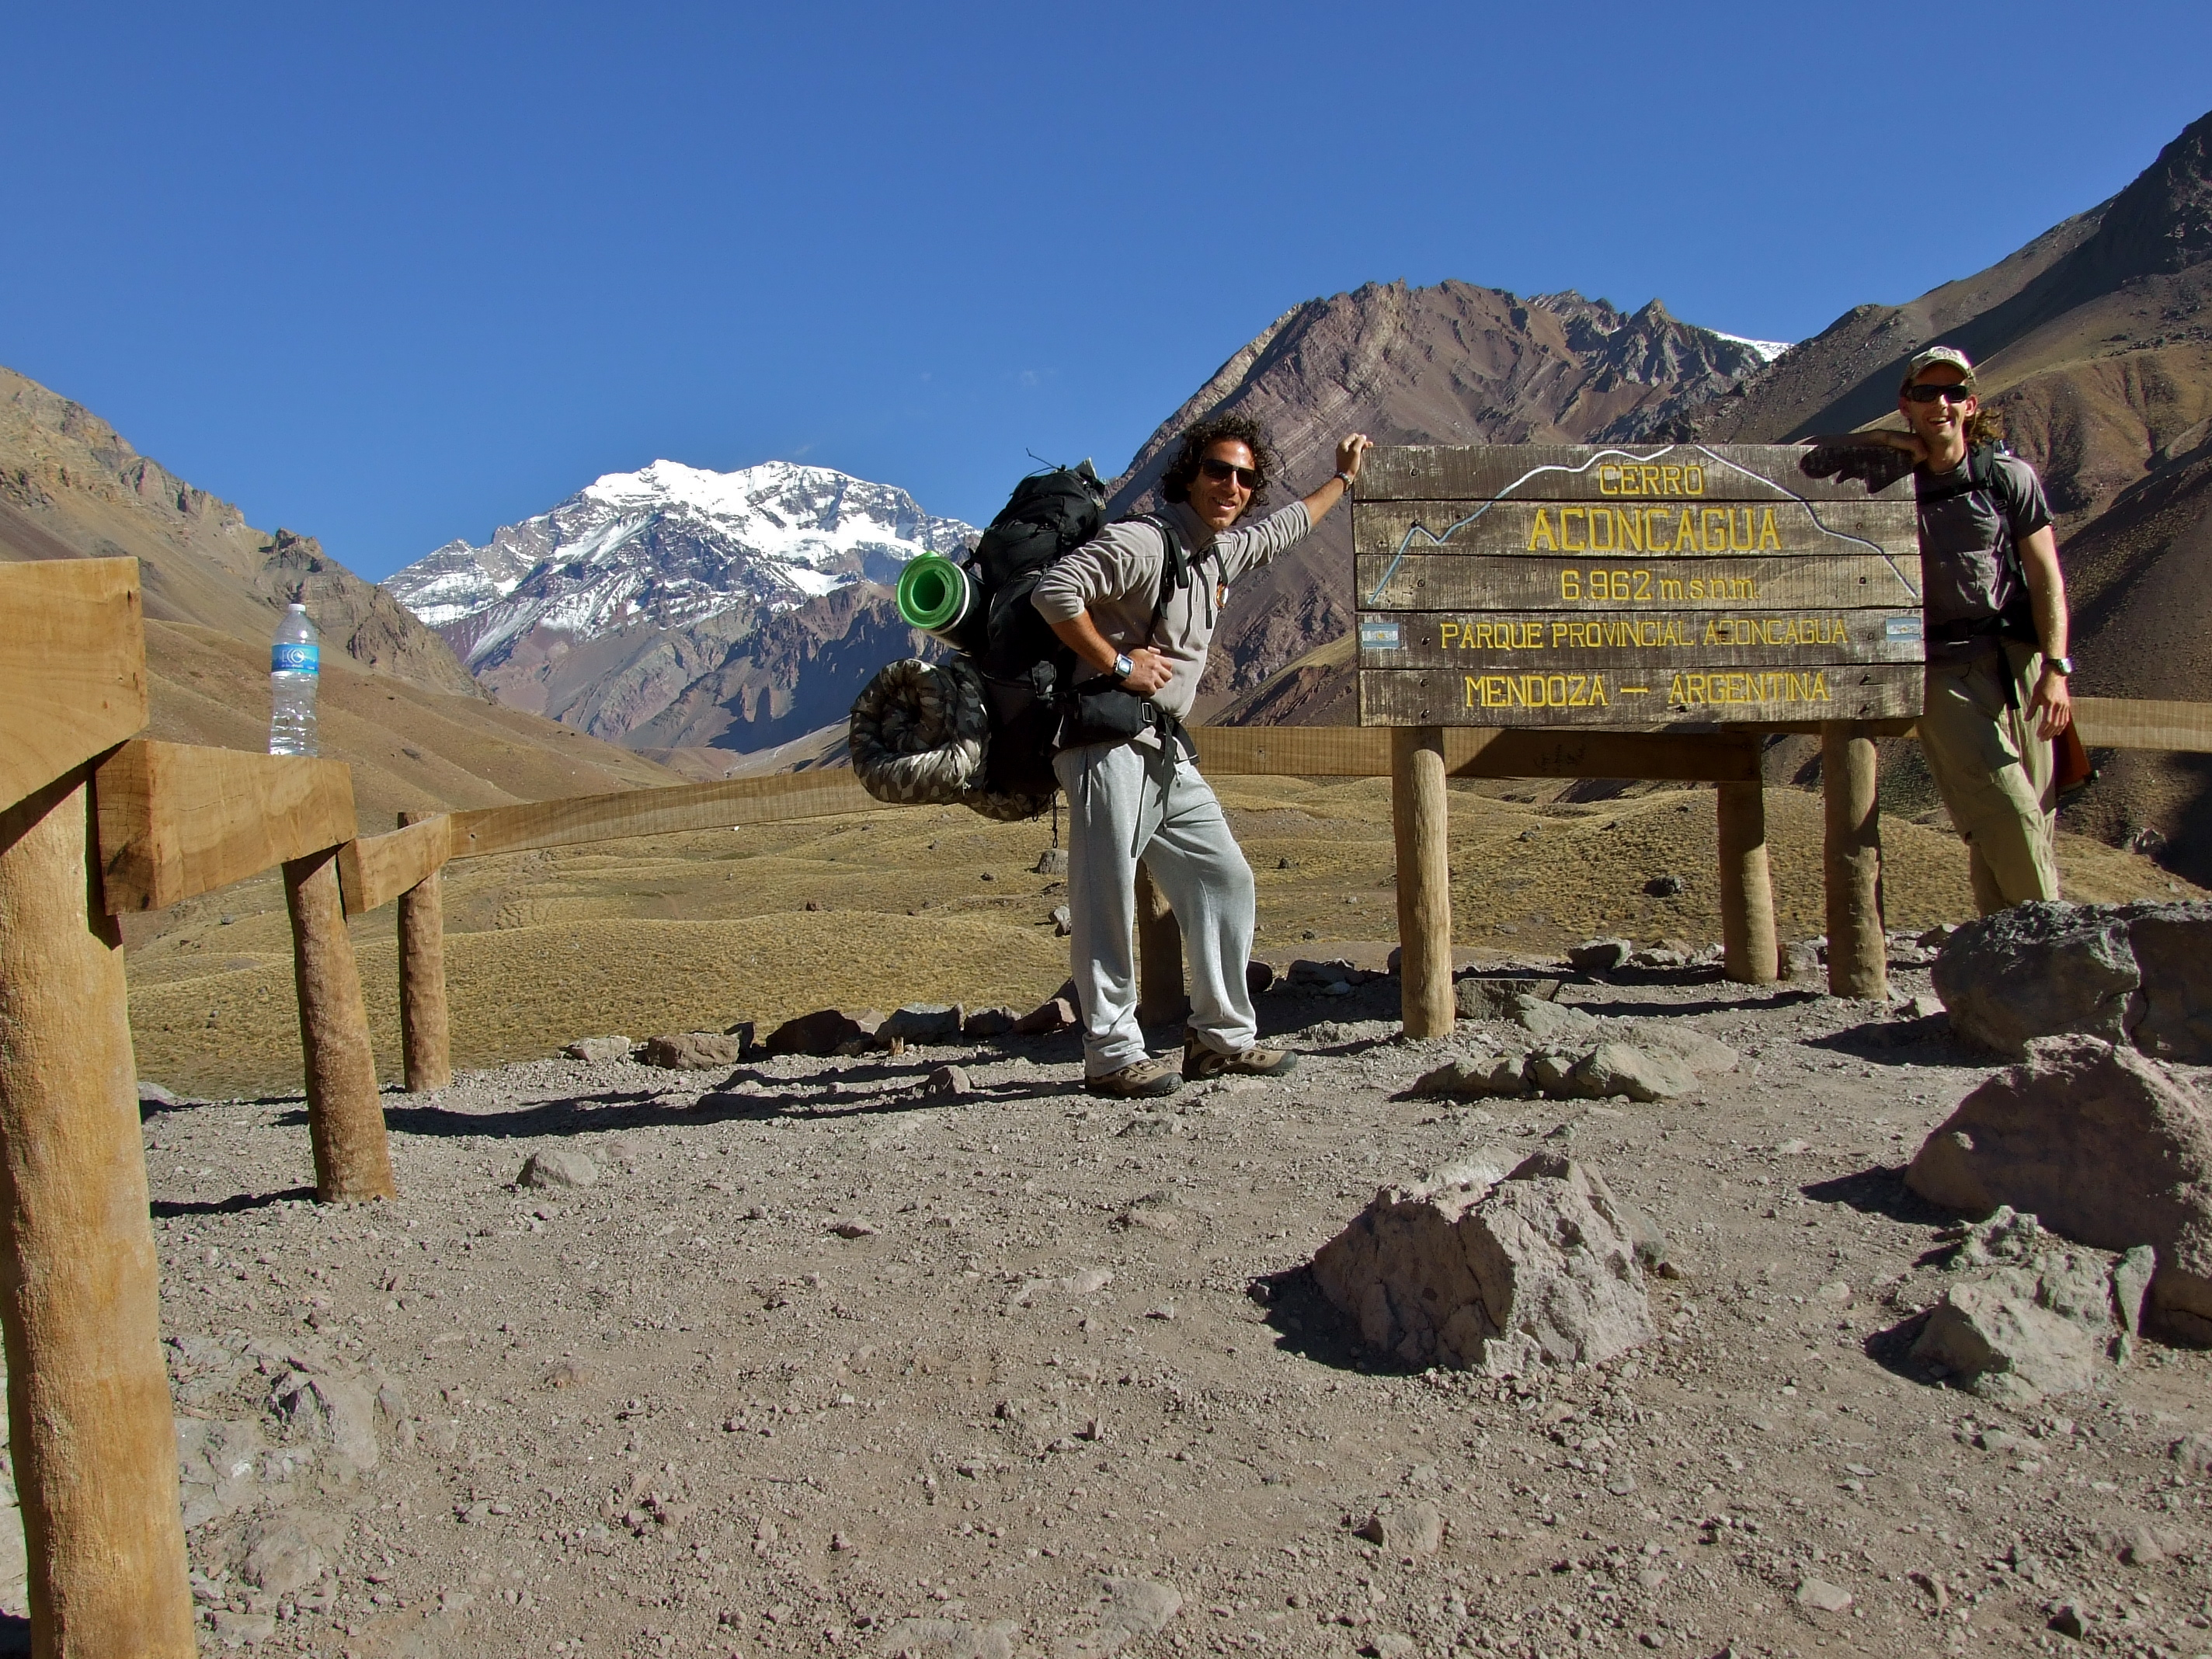 marco_dan_aconcagua